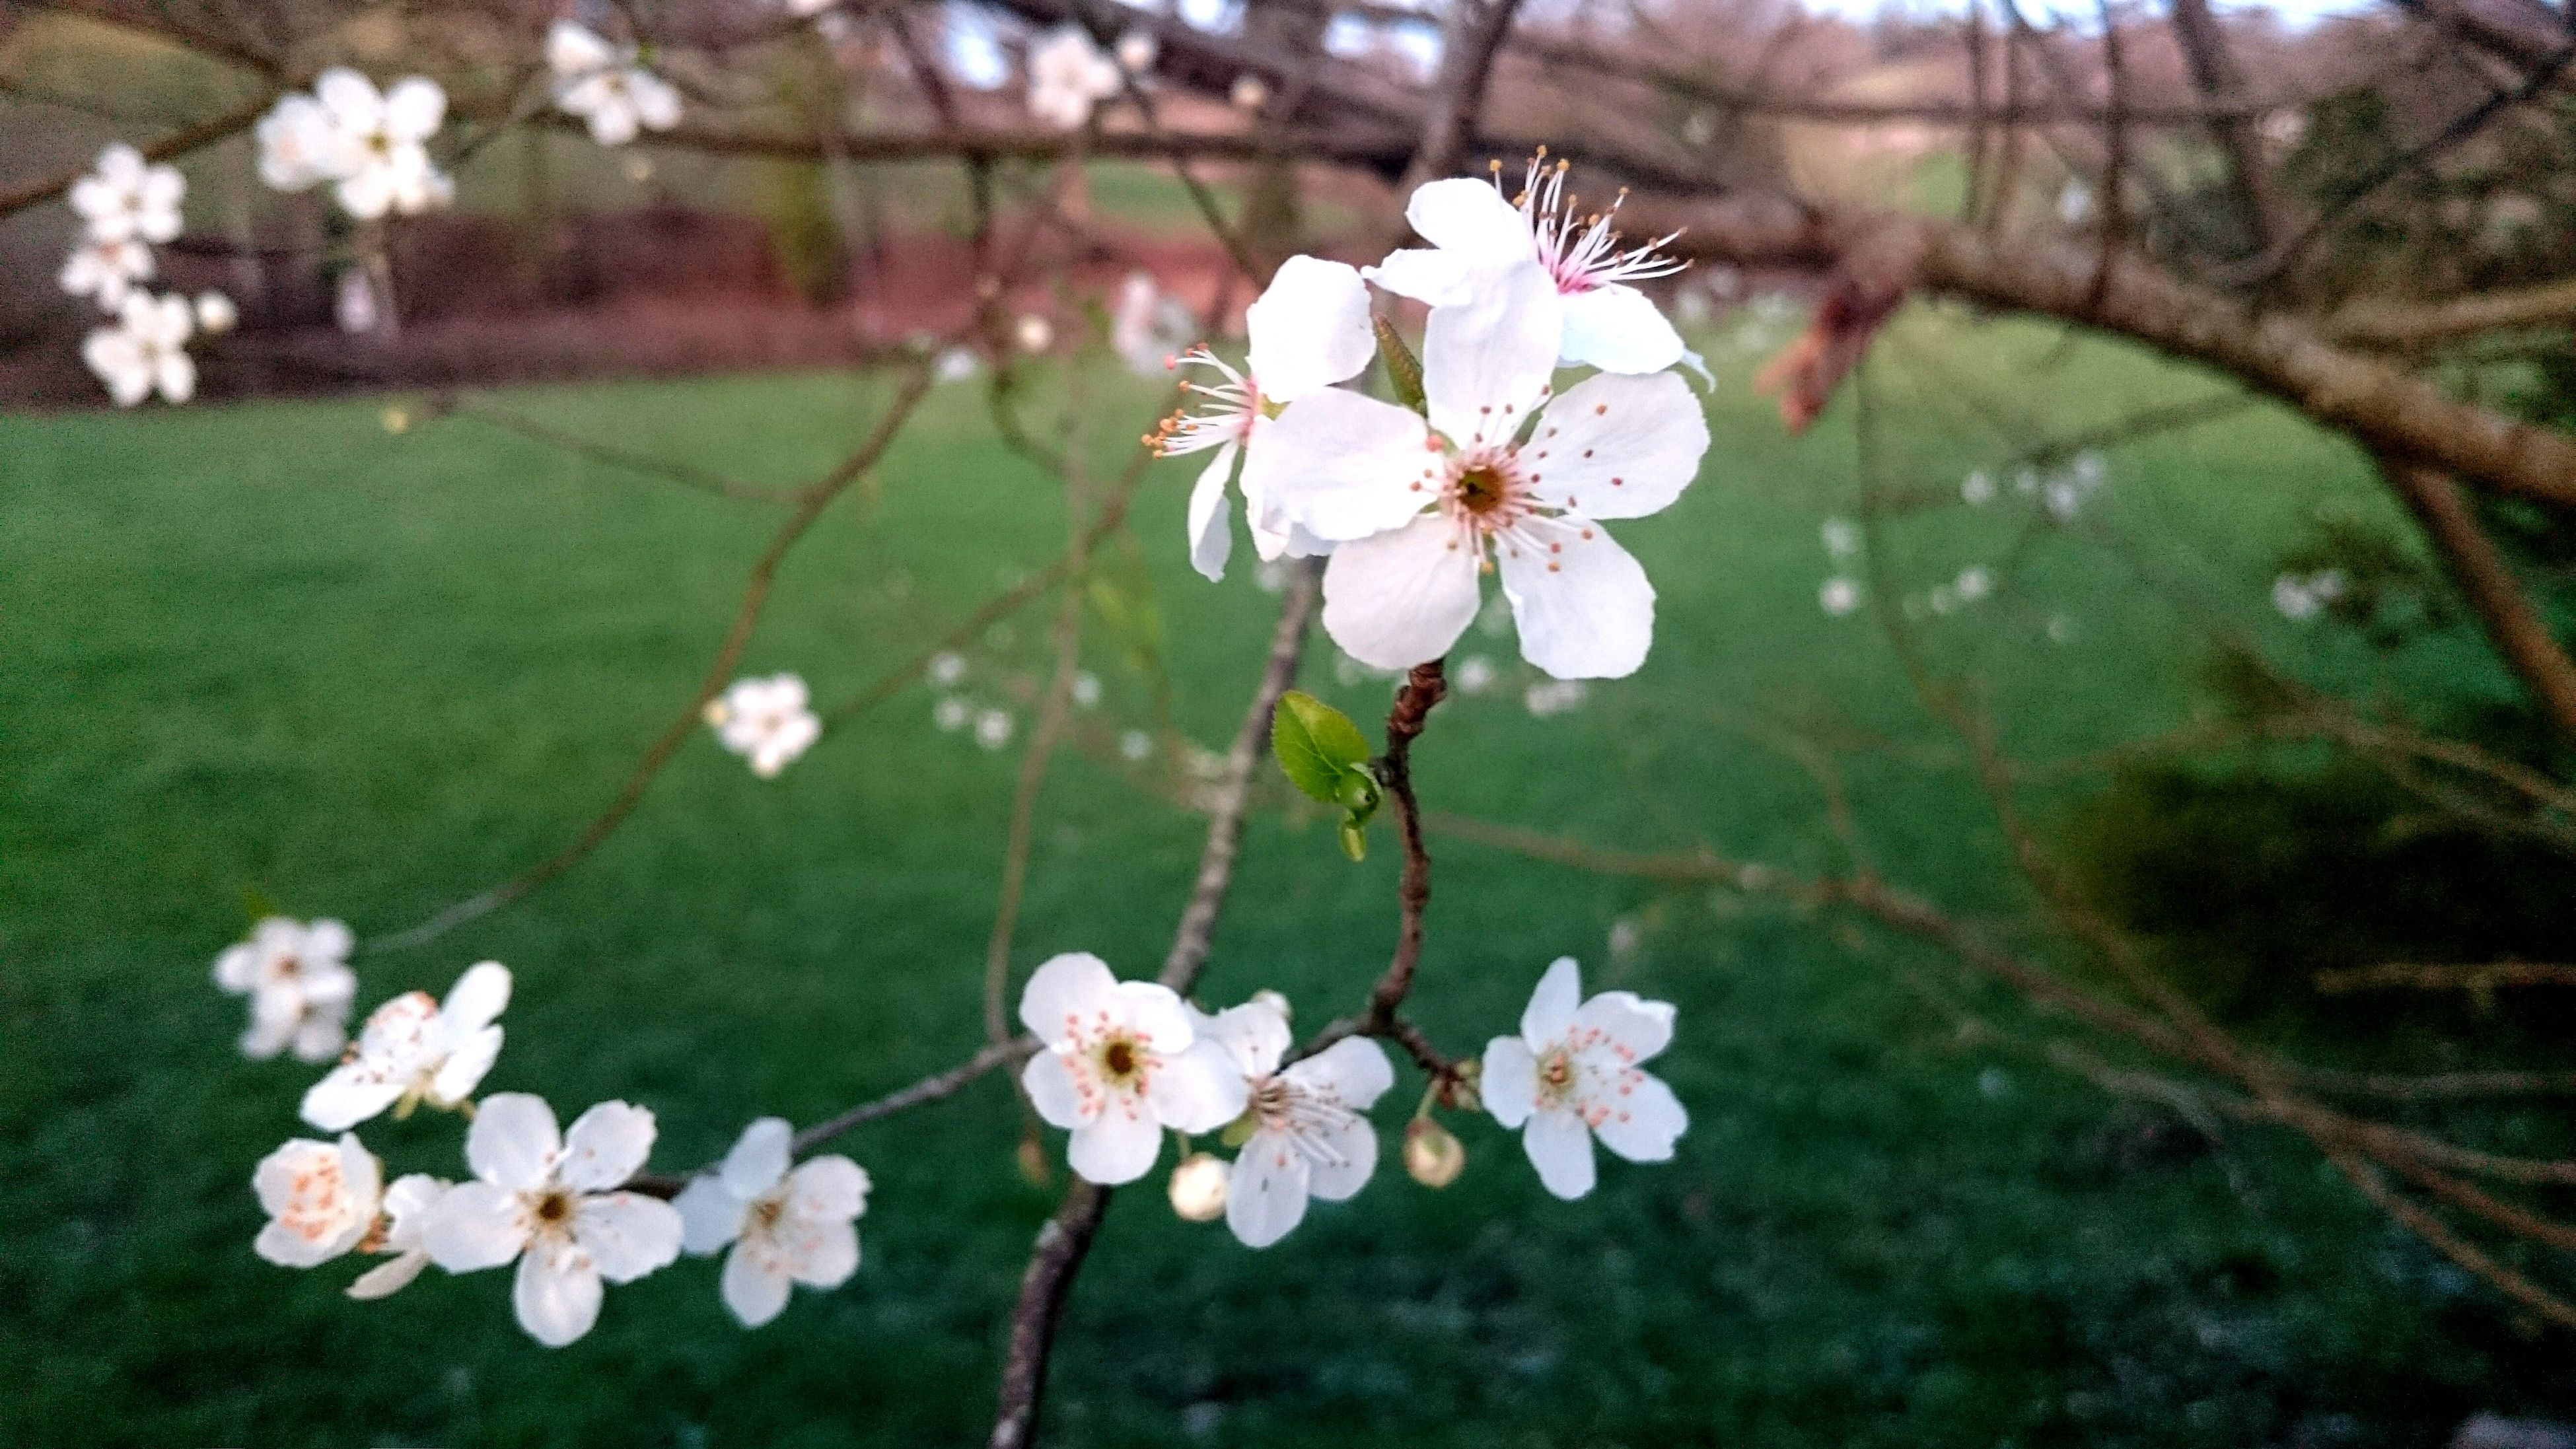 flower, freshness, fragility, growth, beauty in nature, petal, white color, blossom, nature, blooming, flower head, in bloom, tree, branch, springtime, plant, botany, stem, focus on foreground, day